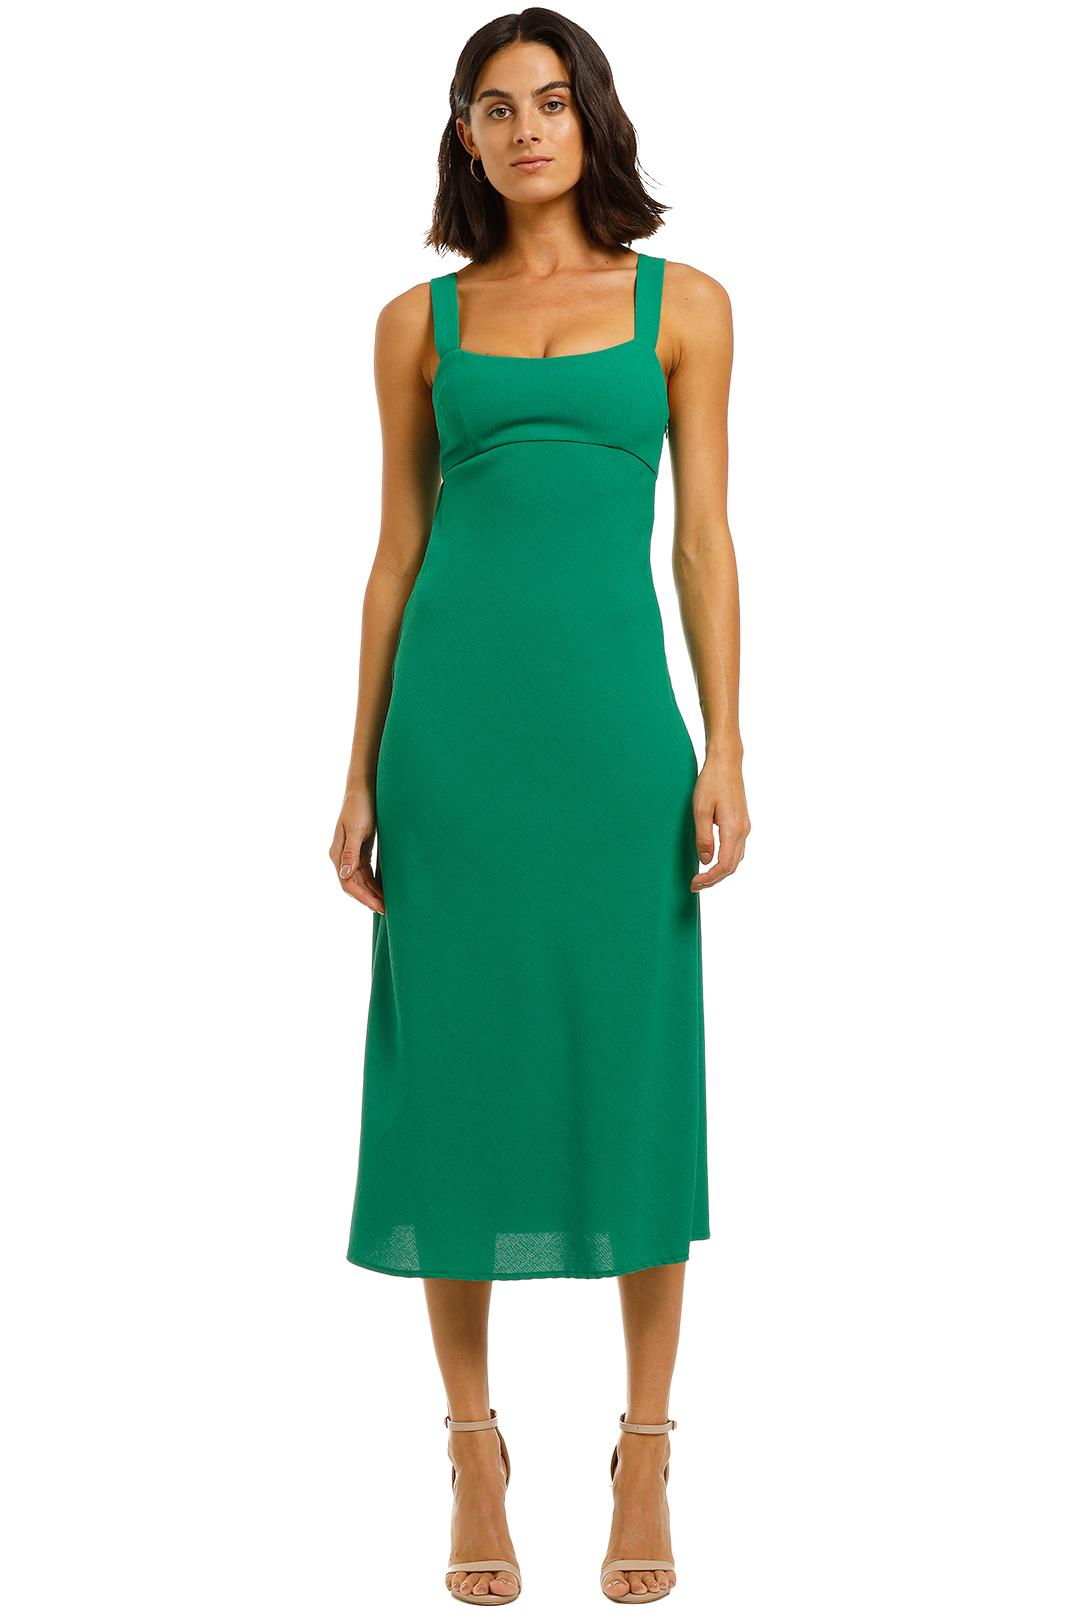 BY JOHNNY - Tayla Bias Midi Dress - Jungle Green